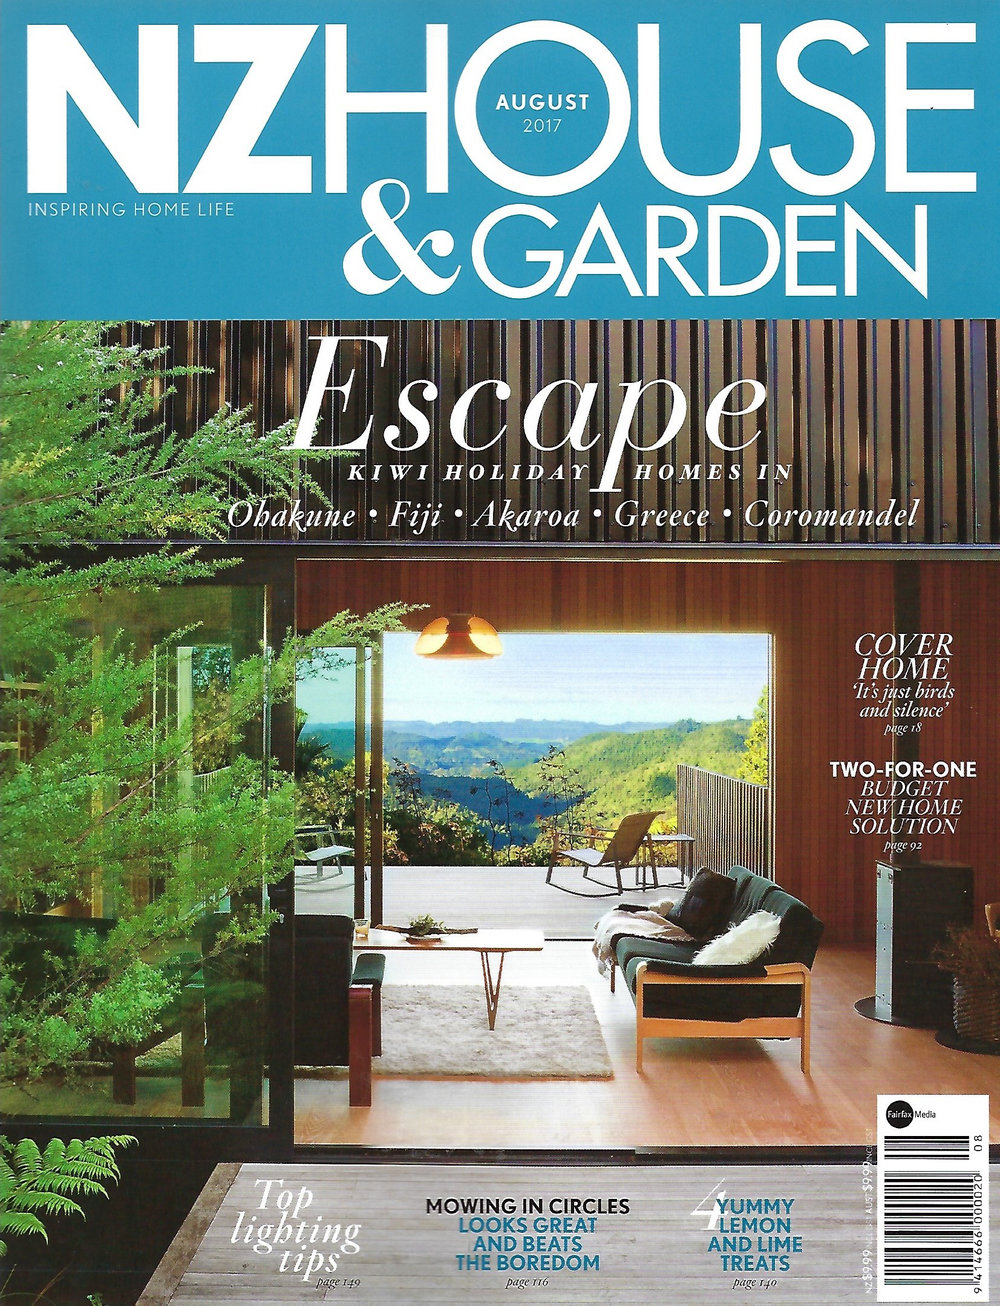 HouseGardenCoverAug17.jpg